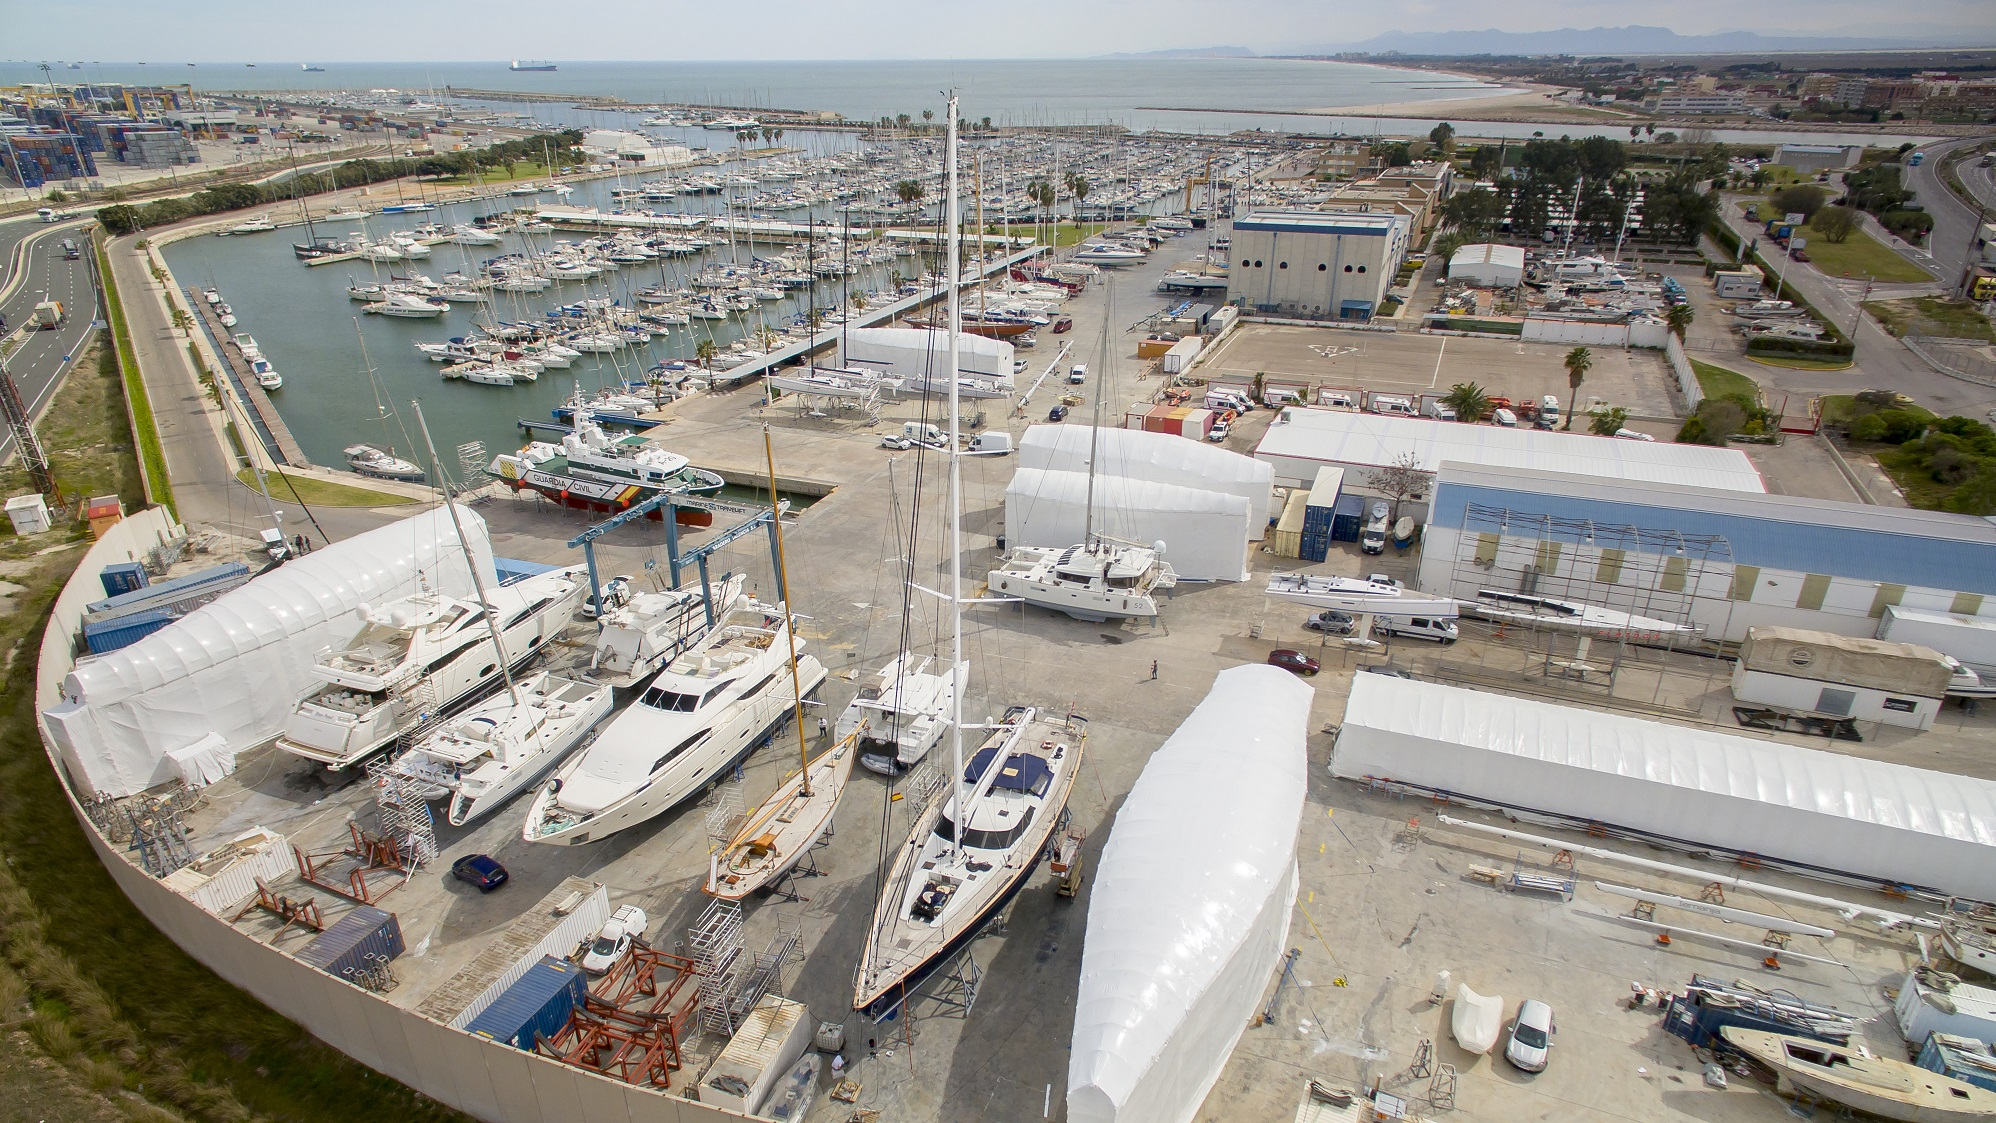 IPM Group presents its latest news in the 36th edition of the Palma Superyacht Show